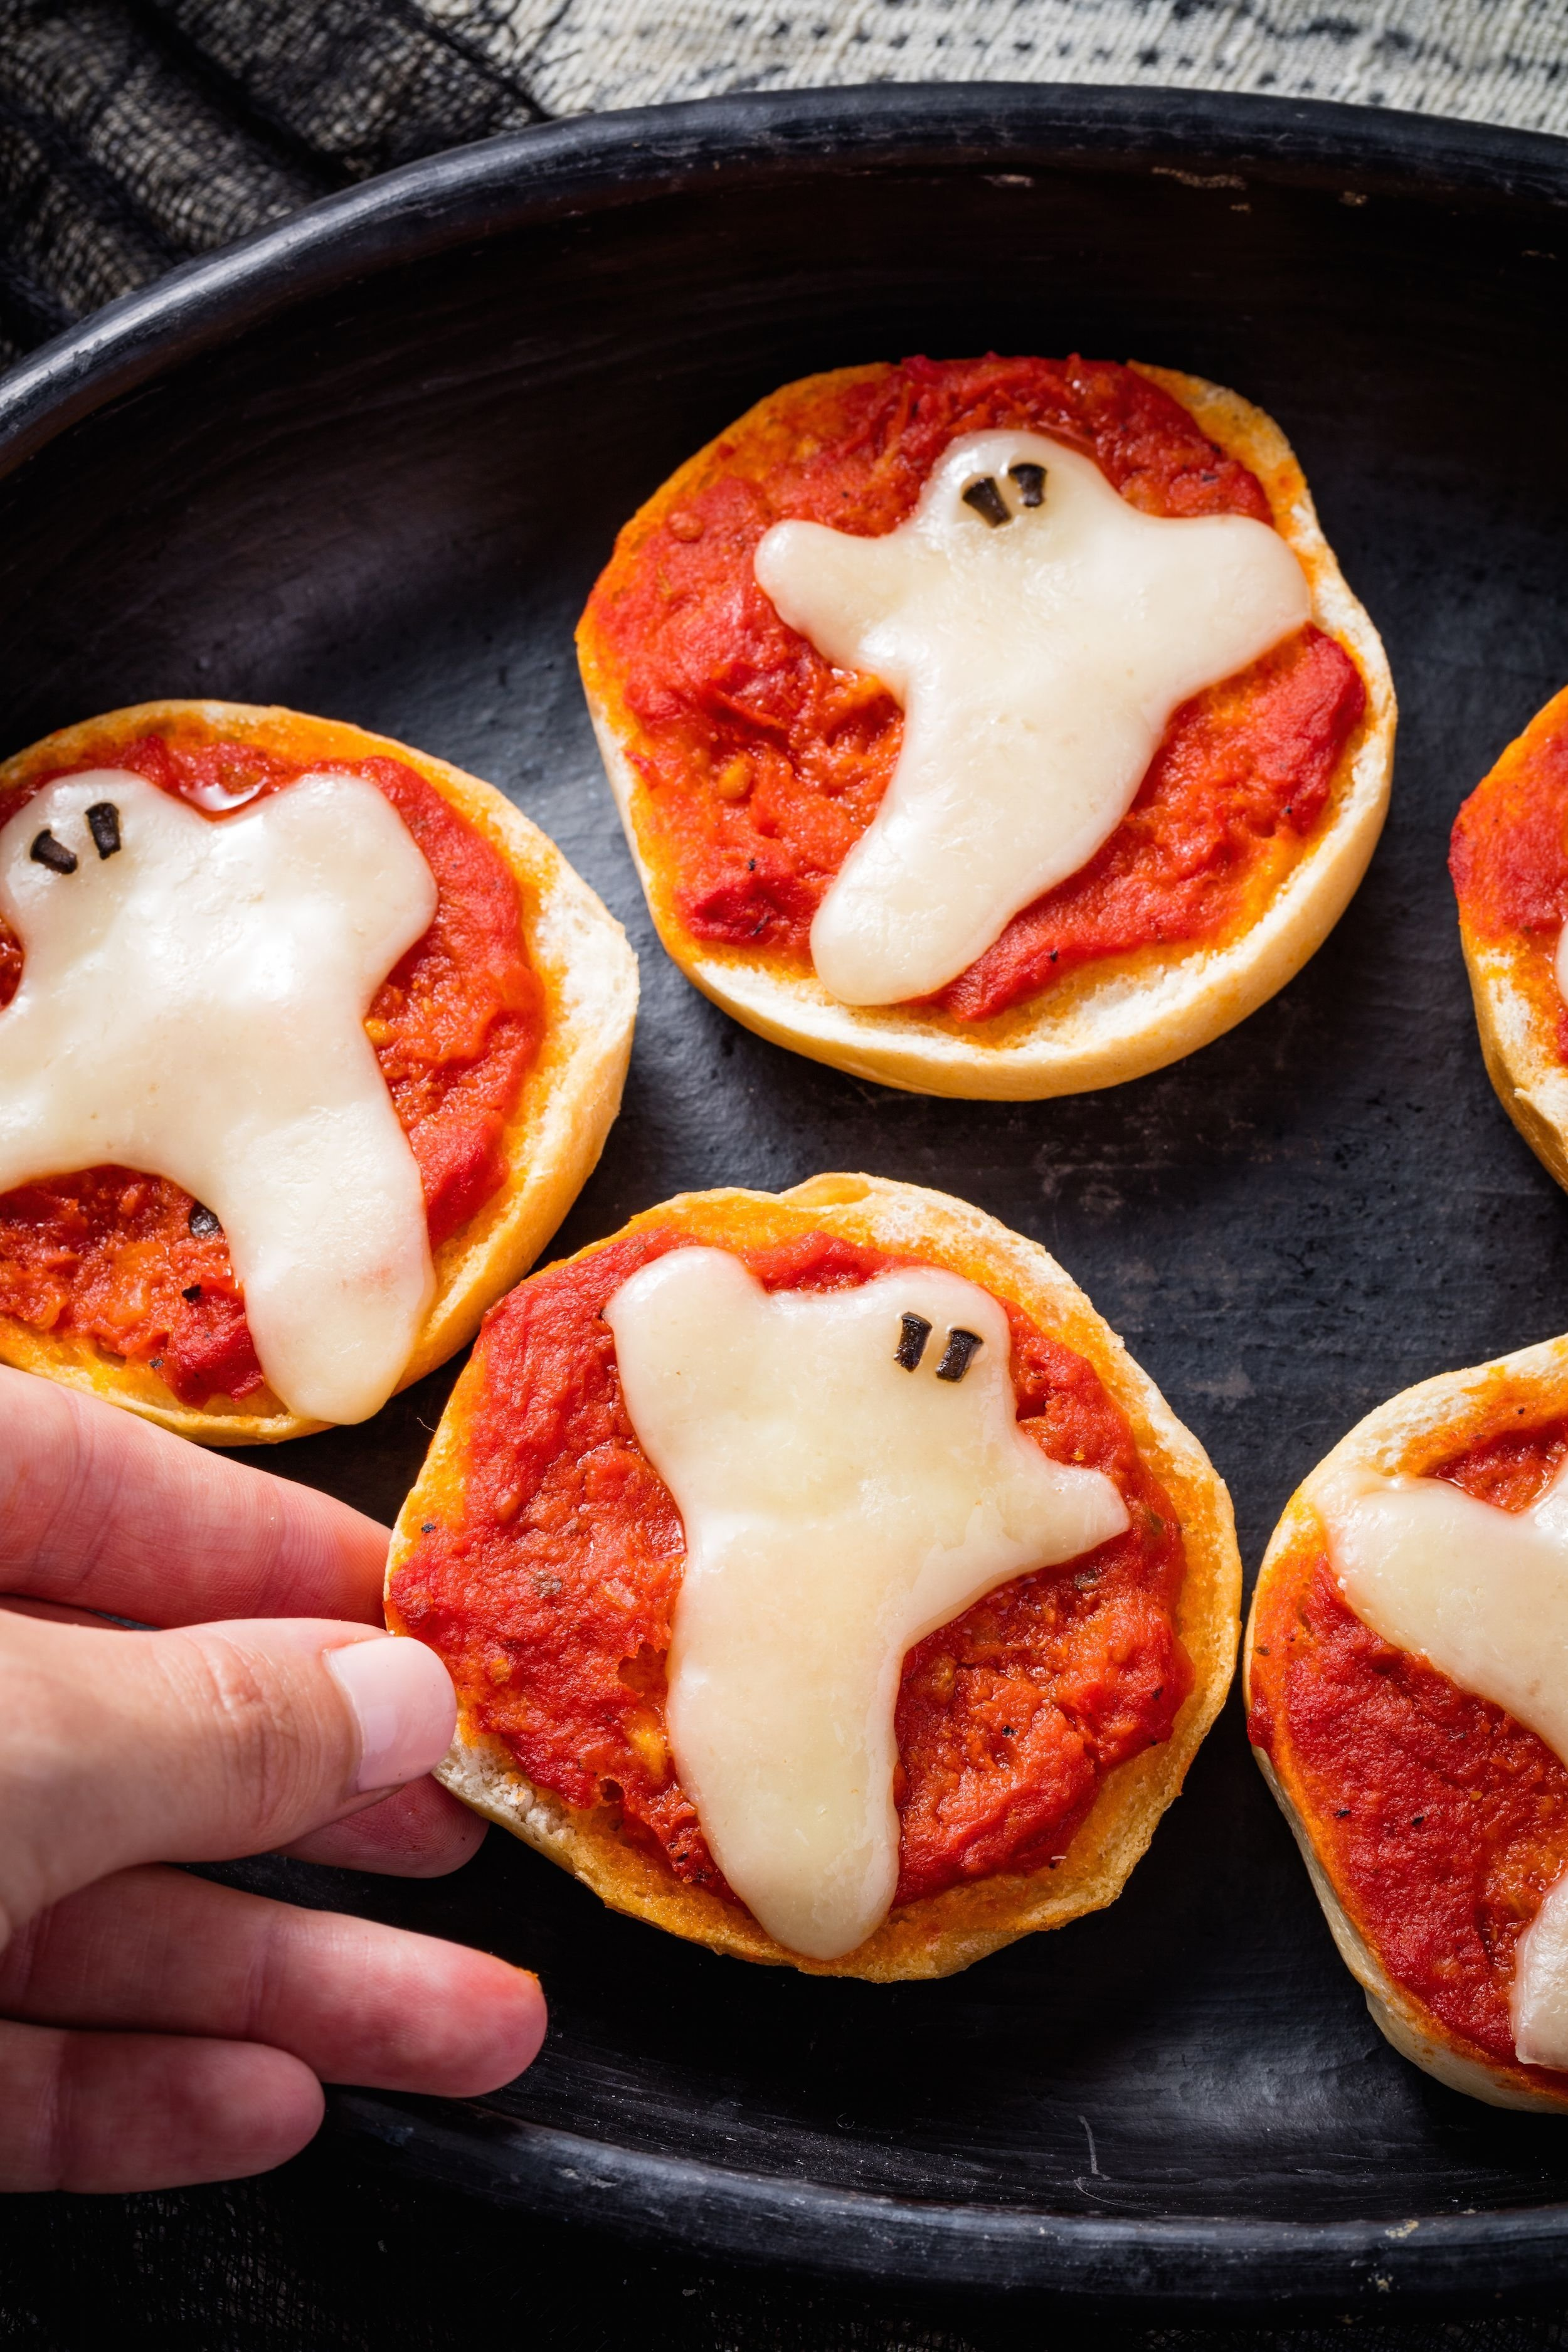 10 Ideal Halloween Food Ideas For Adults 40 adult halloween party ideas halloween food for adults delish 7 2020